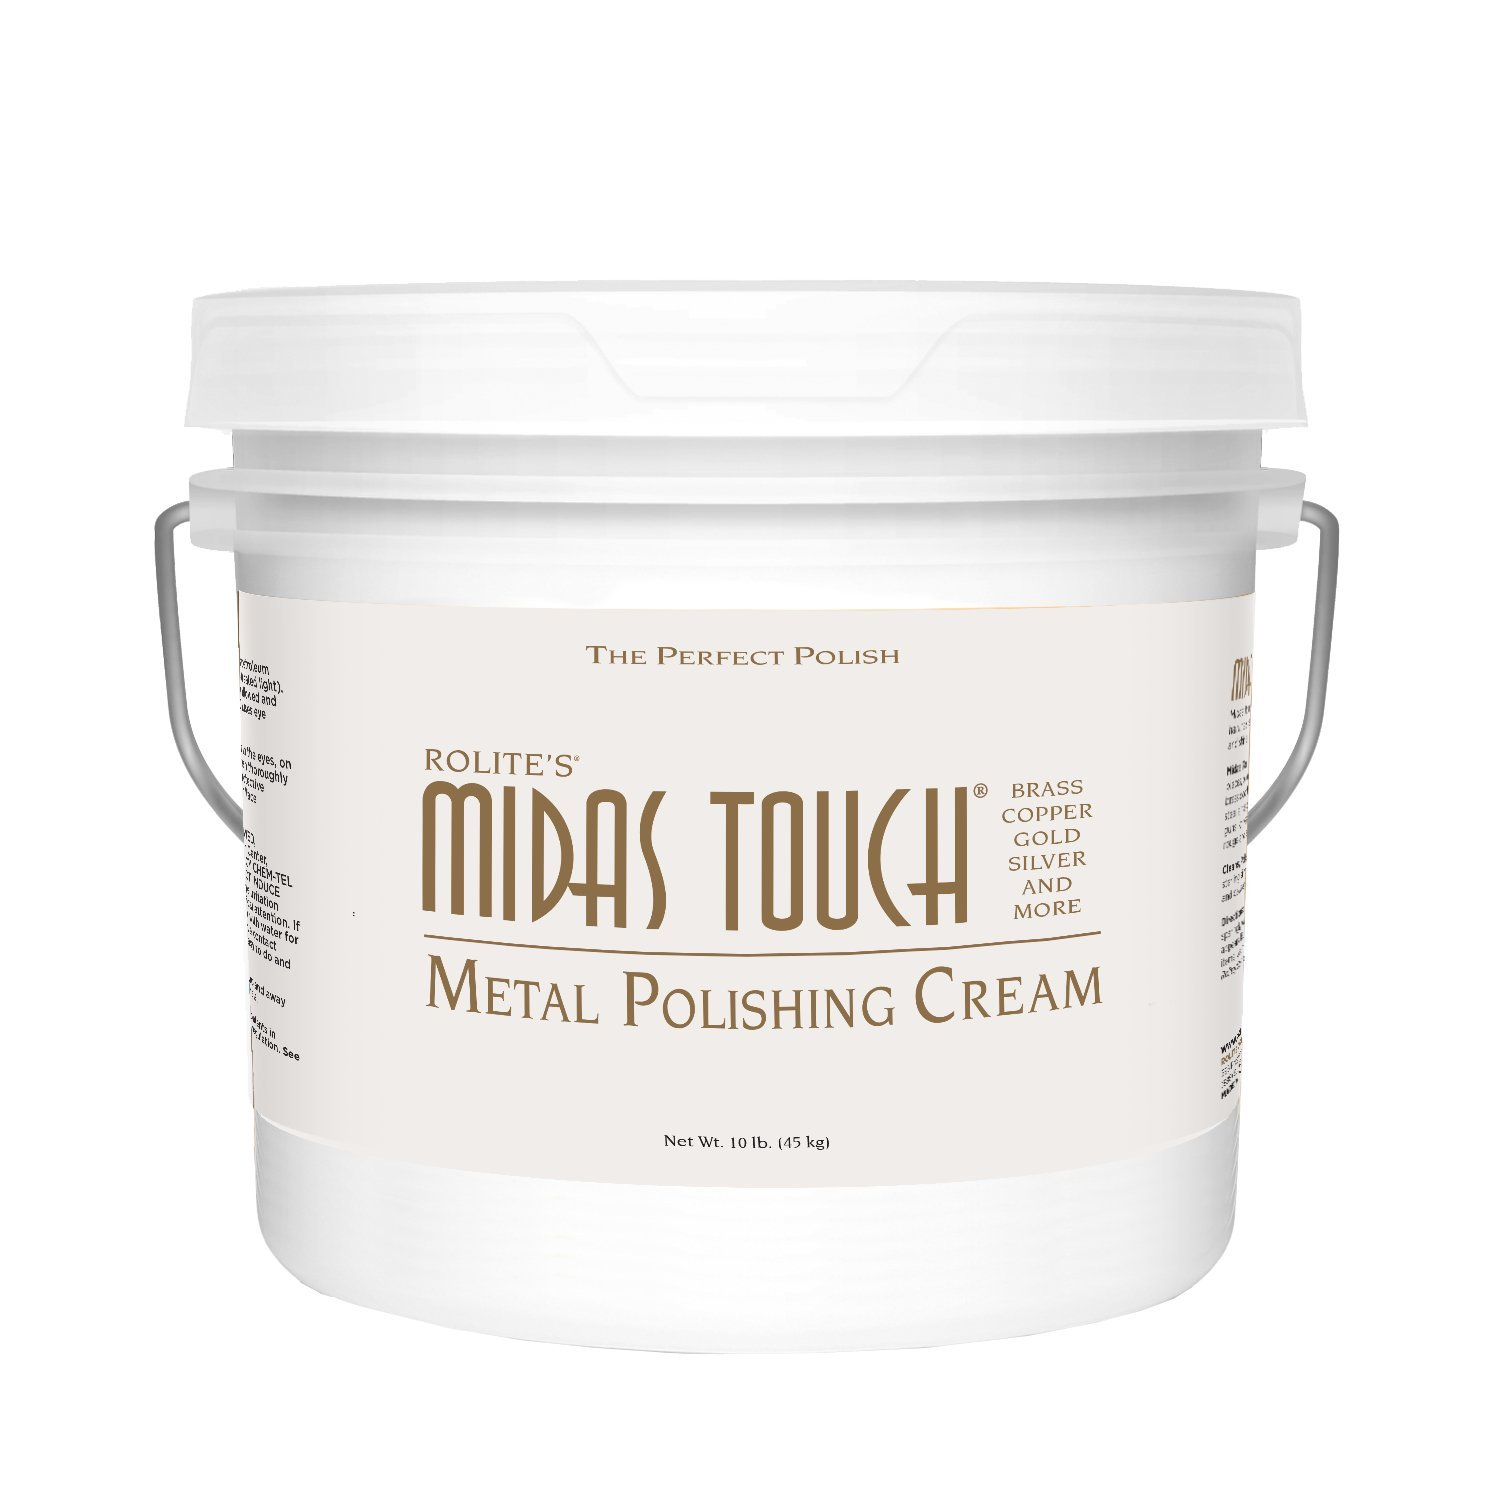 Rolite's Midas Touch Metal Polishing Cream (10lb) with Jewelers Rouge for Gold, Brass, Copper, Bronze, Platinum, Pewter, Bronze, Sterling Silver